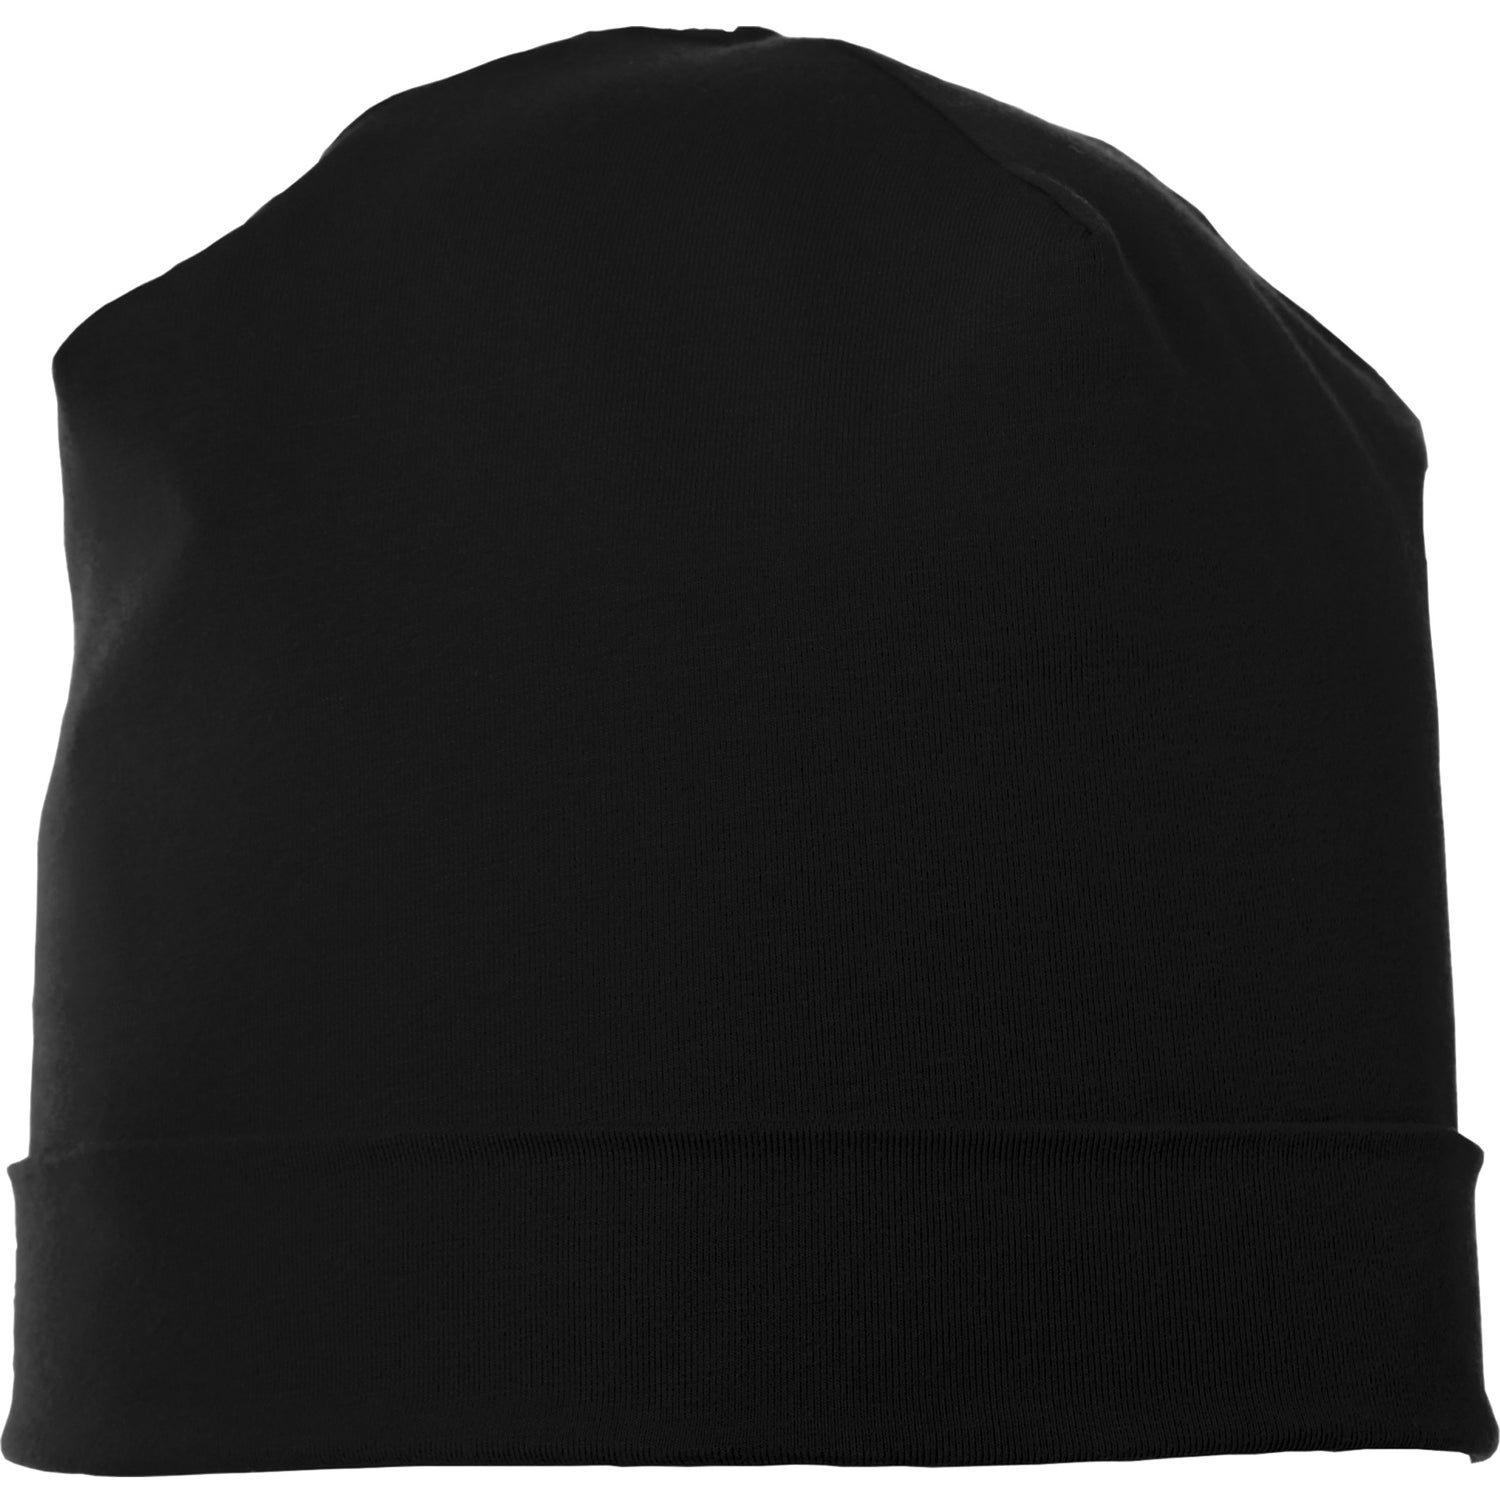 Tempo Jersey Toque Beanie by TRIMARK